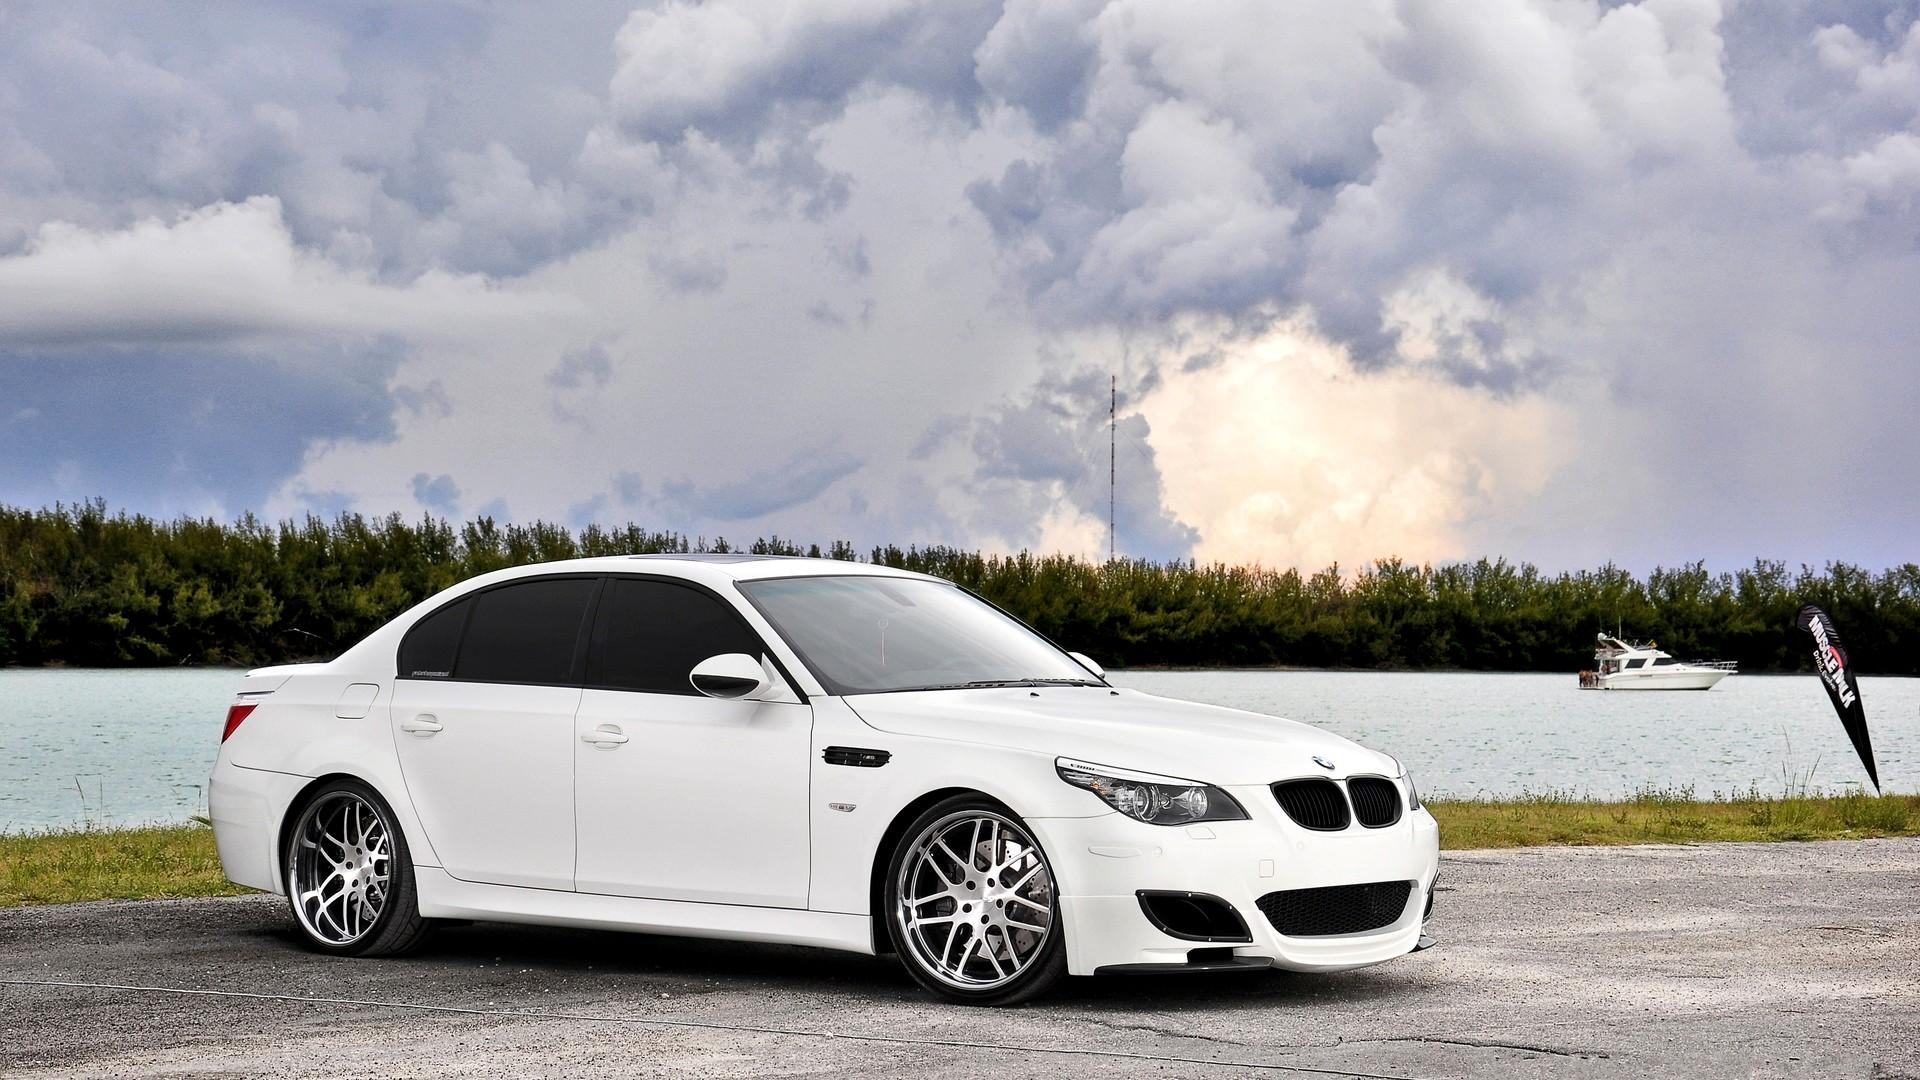 Bmw M5 E60 Wallpapers Top Free Bmw M5 E60 Backgrounds Wallpaperaccess